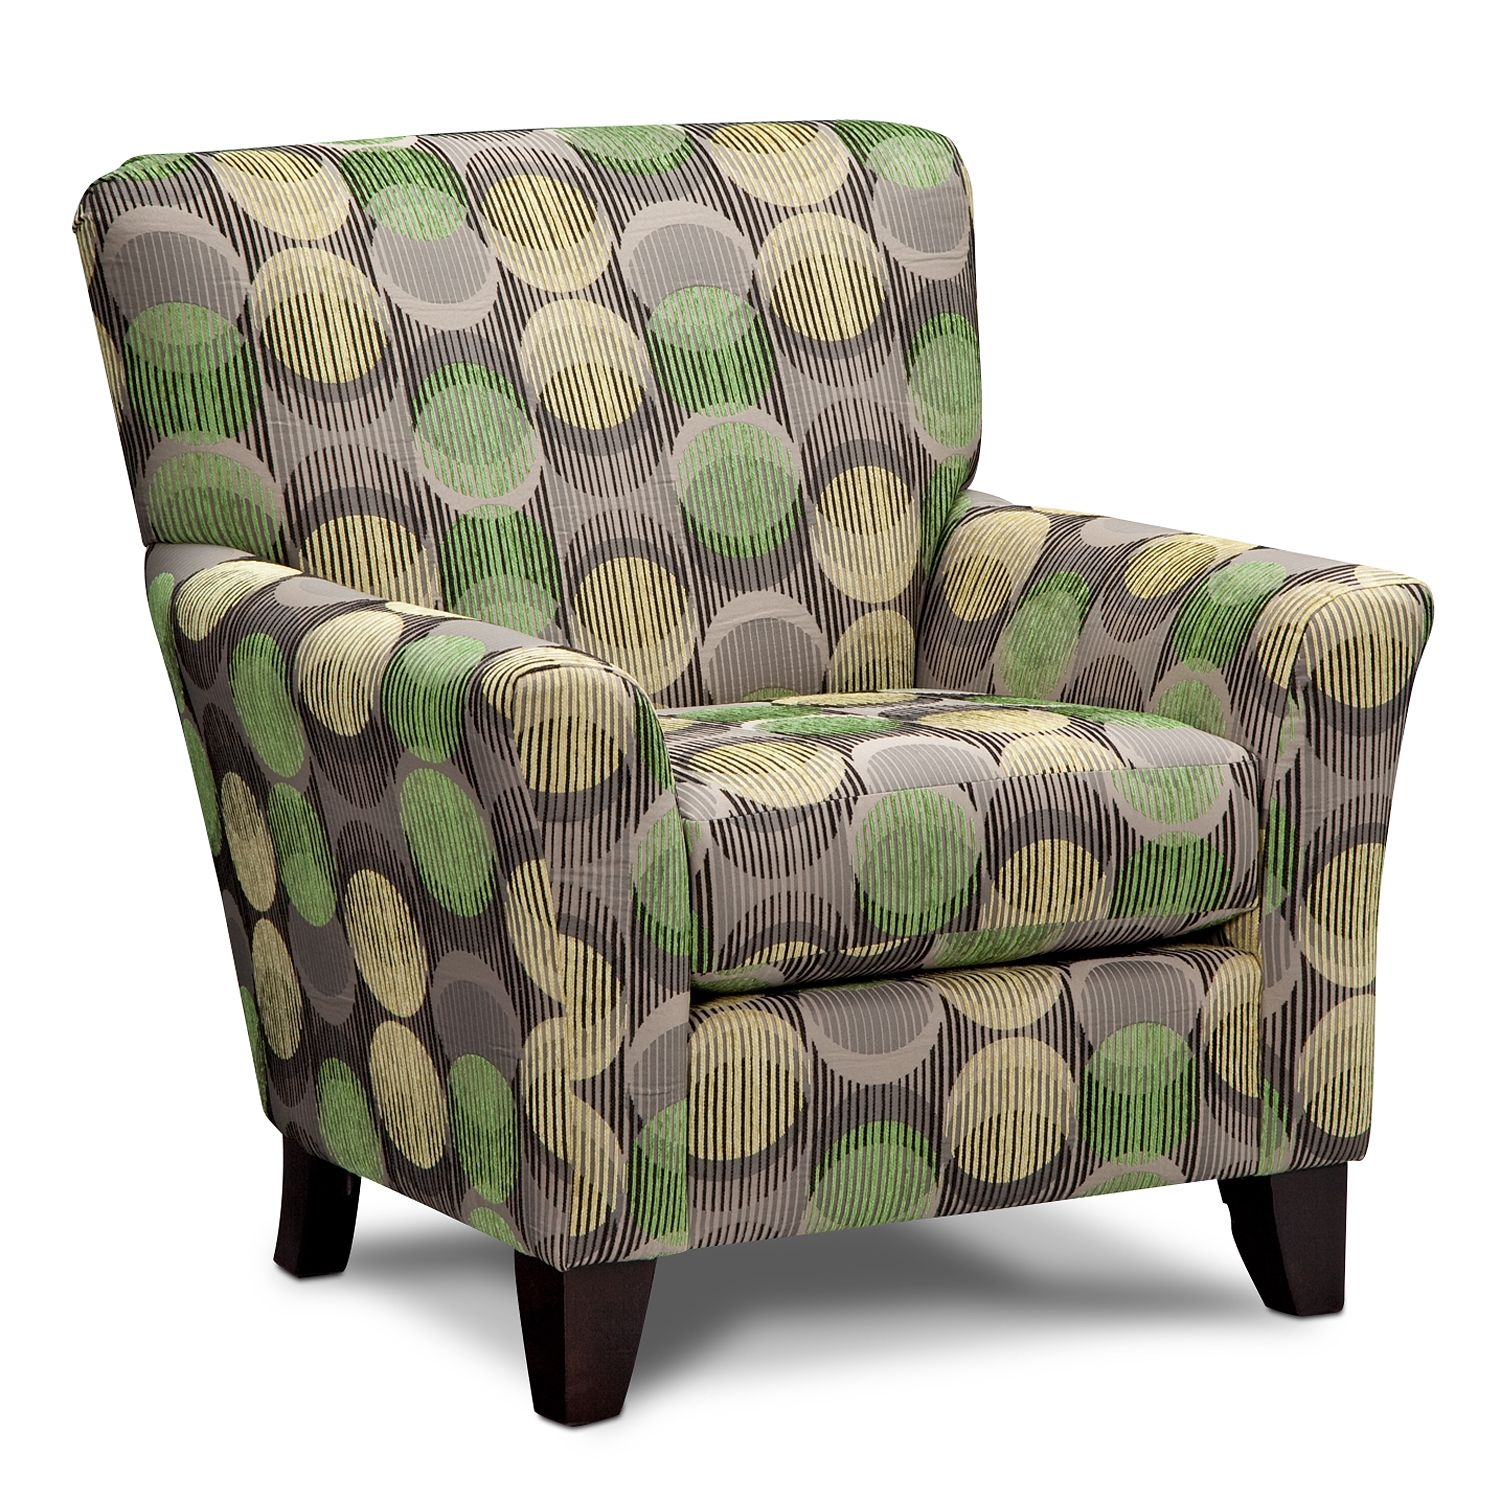 Cool Accent Chairs With Polka Upholstery And Short Wooden Legs And Comfy  Back Plus Arm For